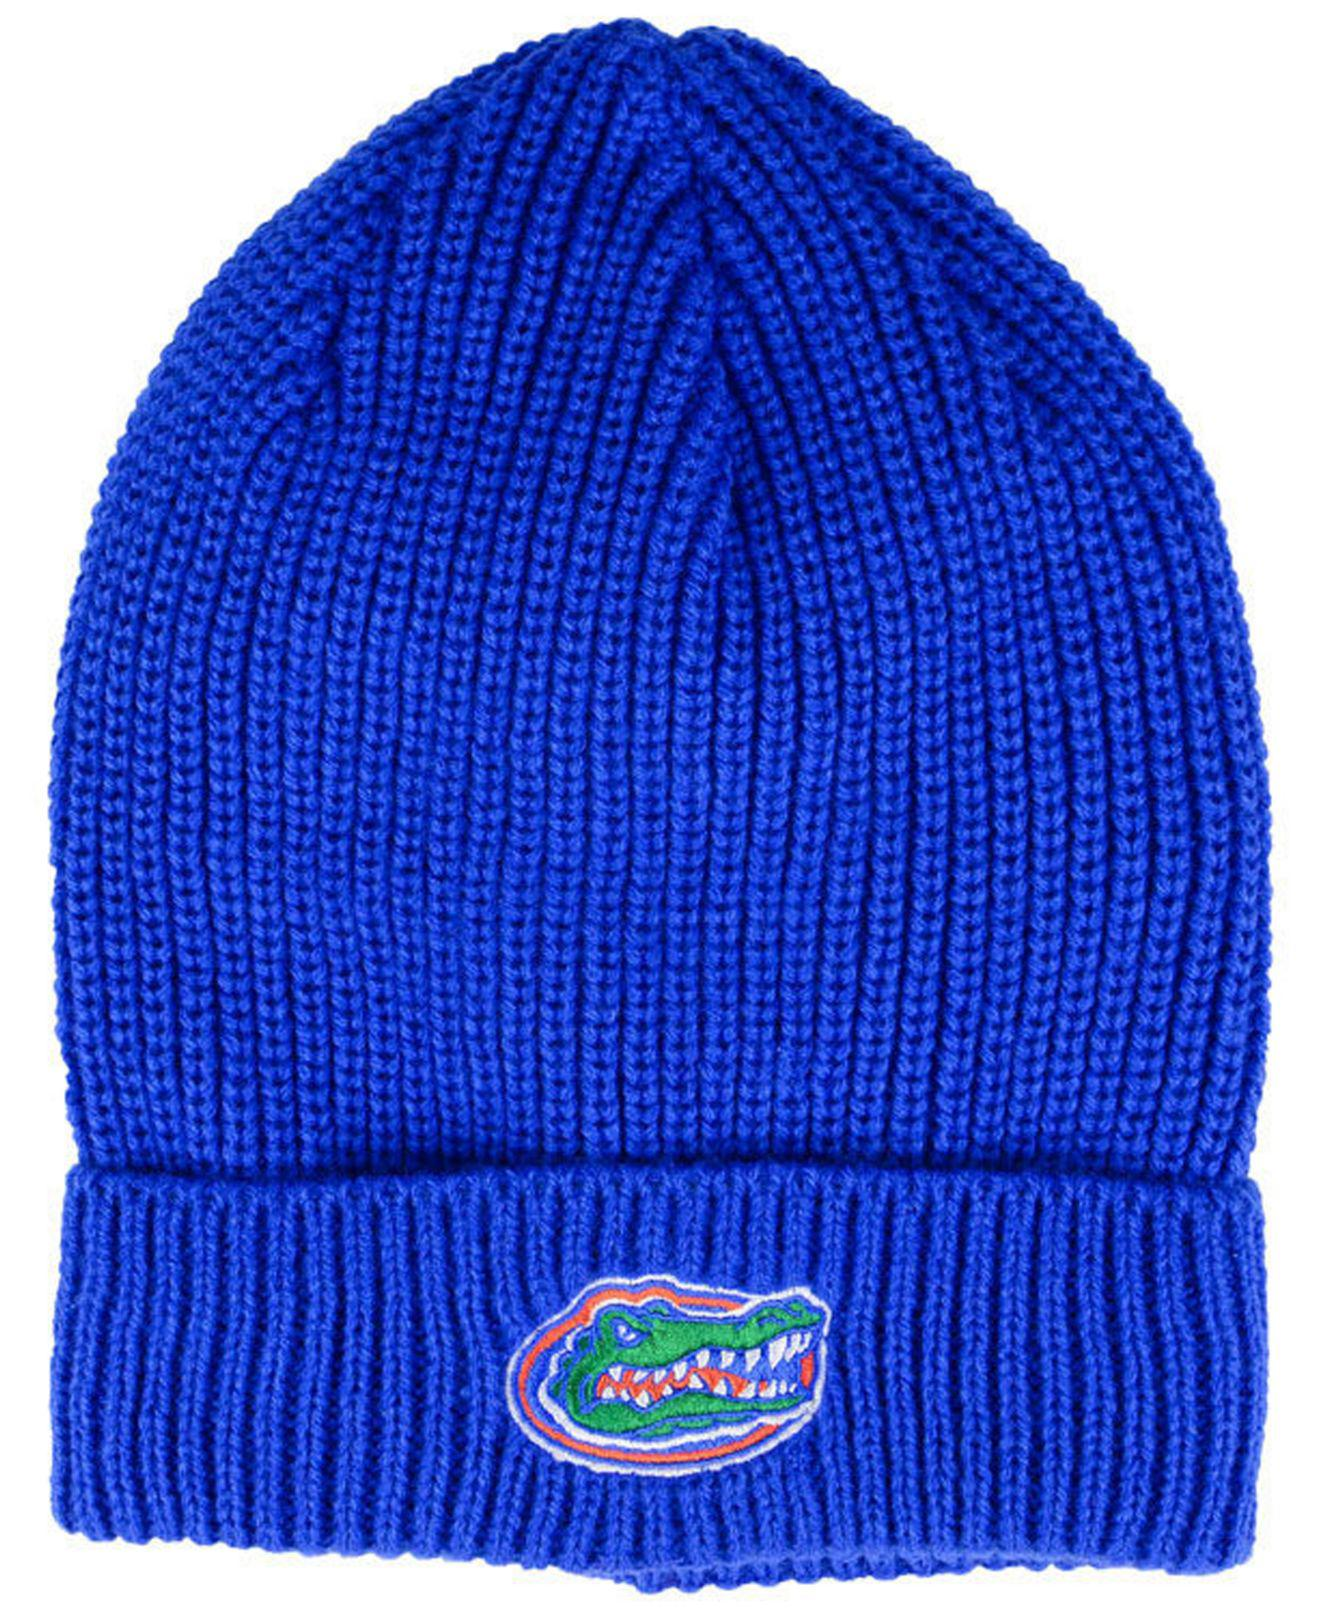 hot sale online 30a82 a57c7 ... top quality nike. mens blue cuffed knit hat 1a4eb 401a6